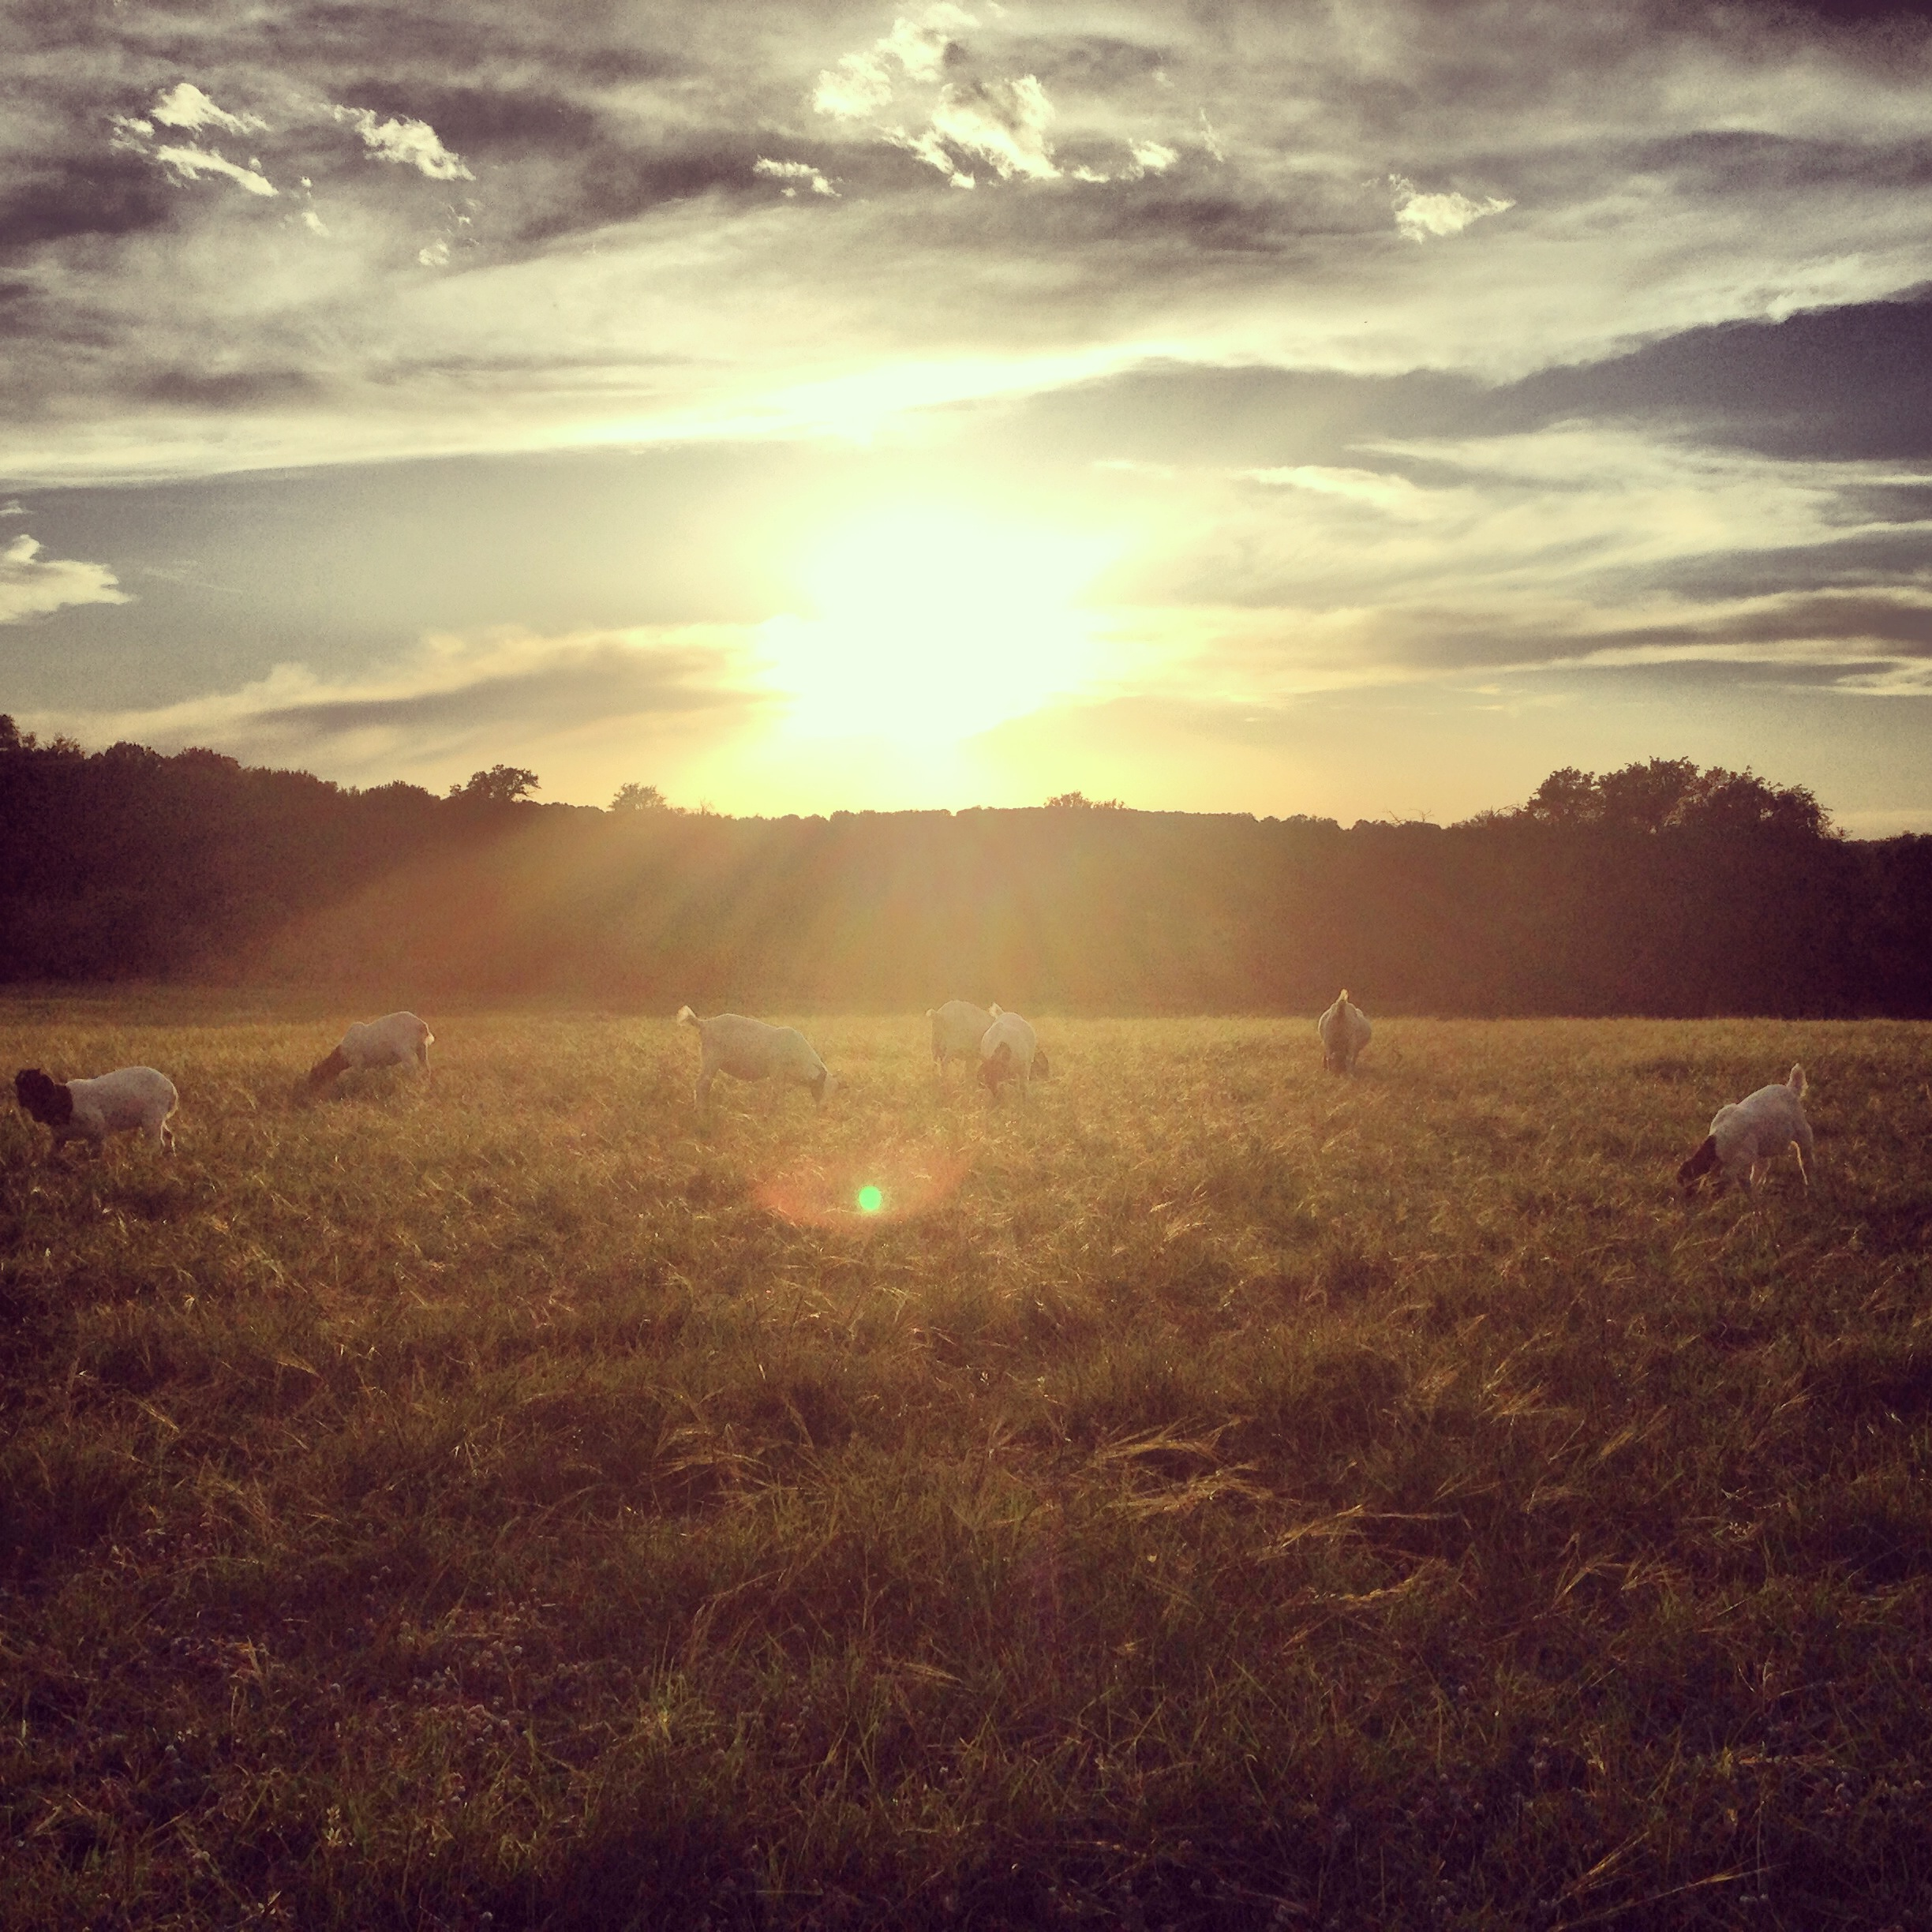 The sun has set once again on an eventful weekend. (The goats were not ready to go into the barn)